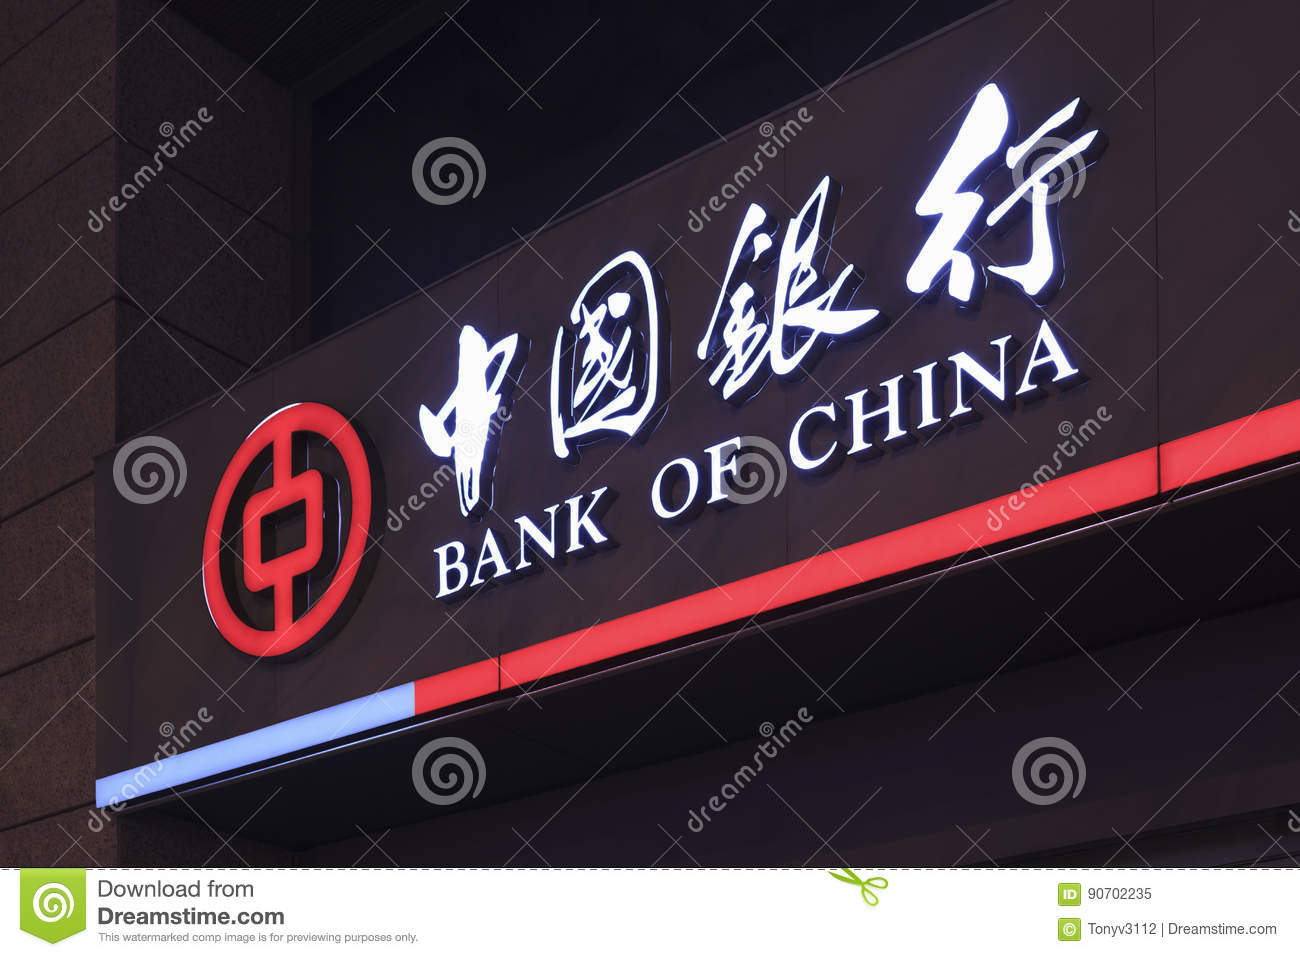 Bank of China signage at night, Beijing, China